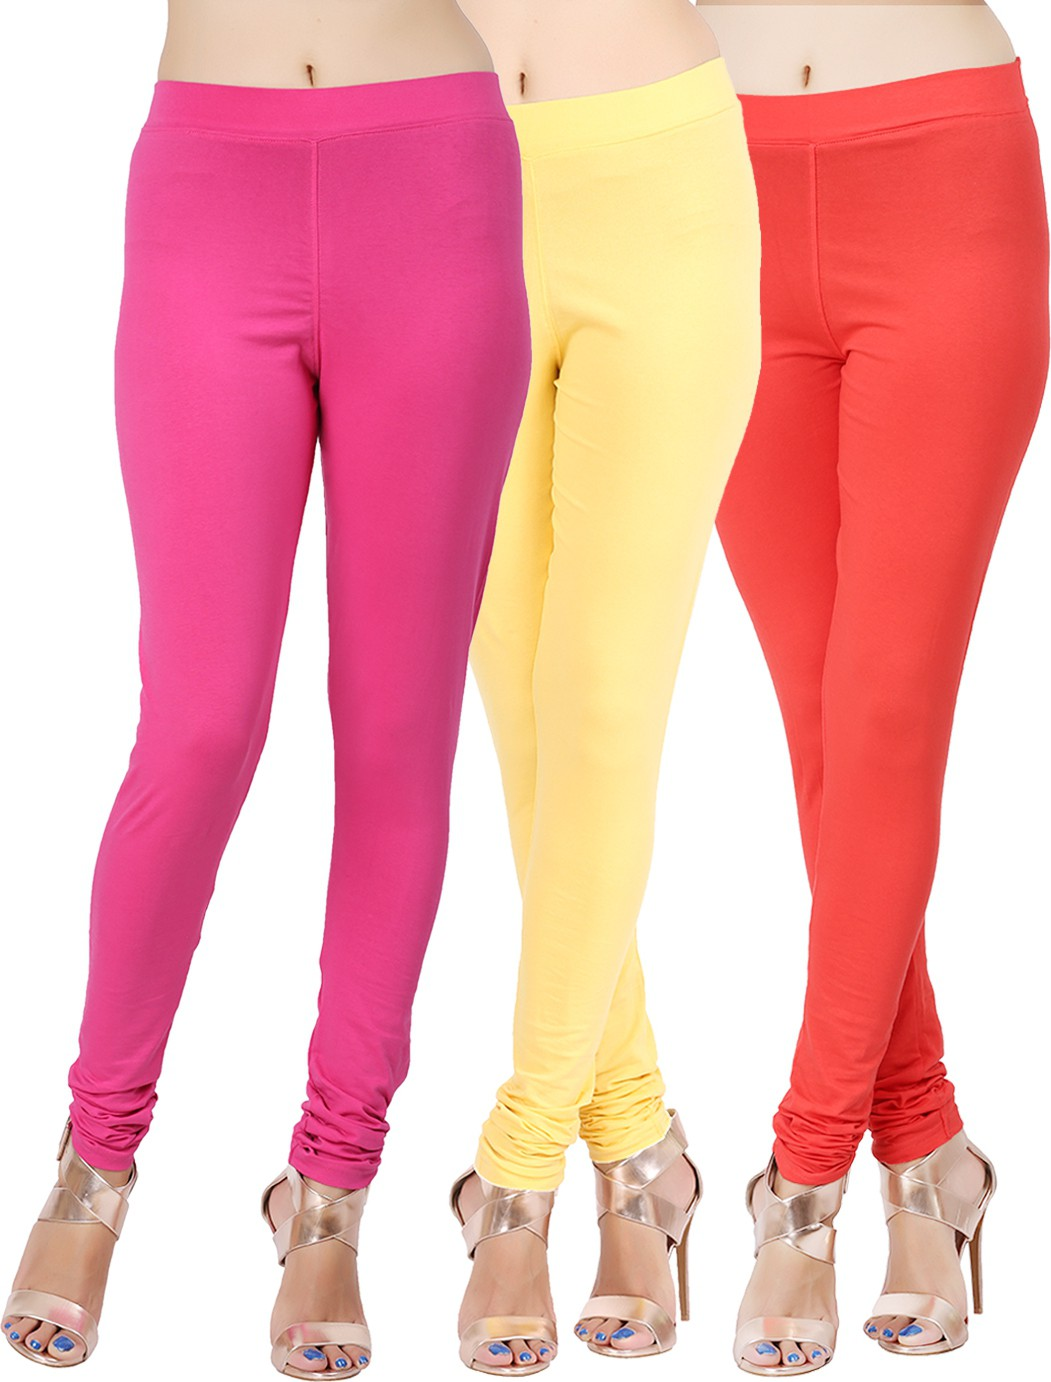 Lula Ms Womens Pink, Yellow, Red Leggings(Pack of 3)